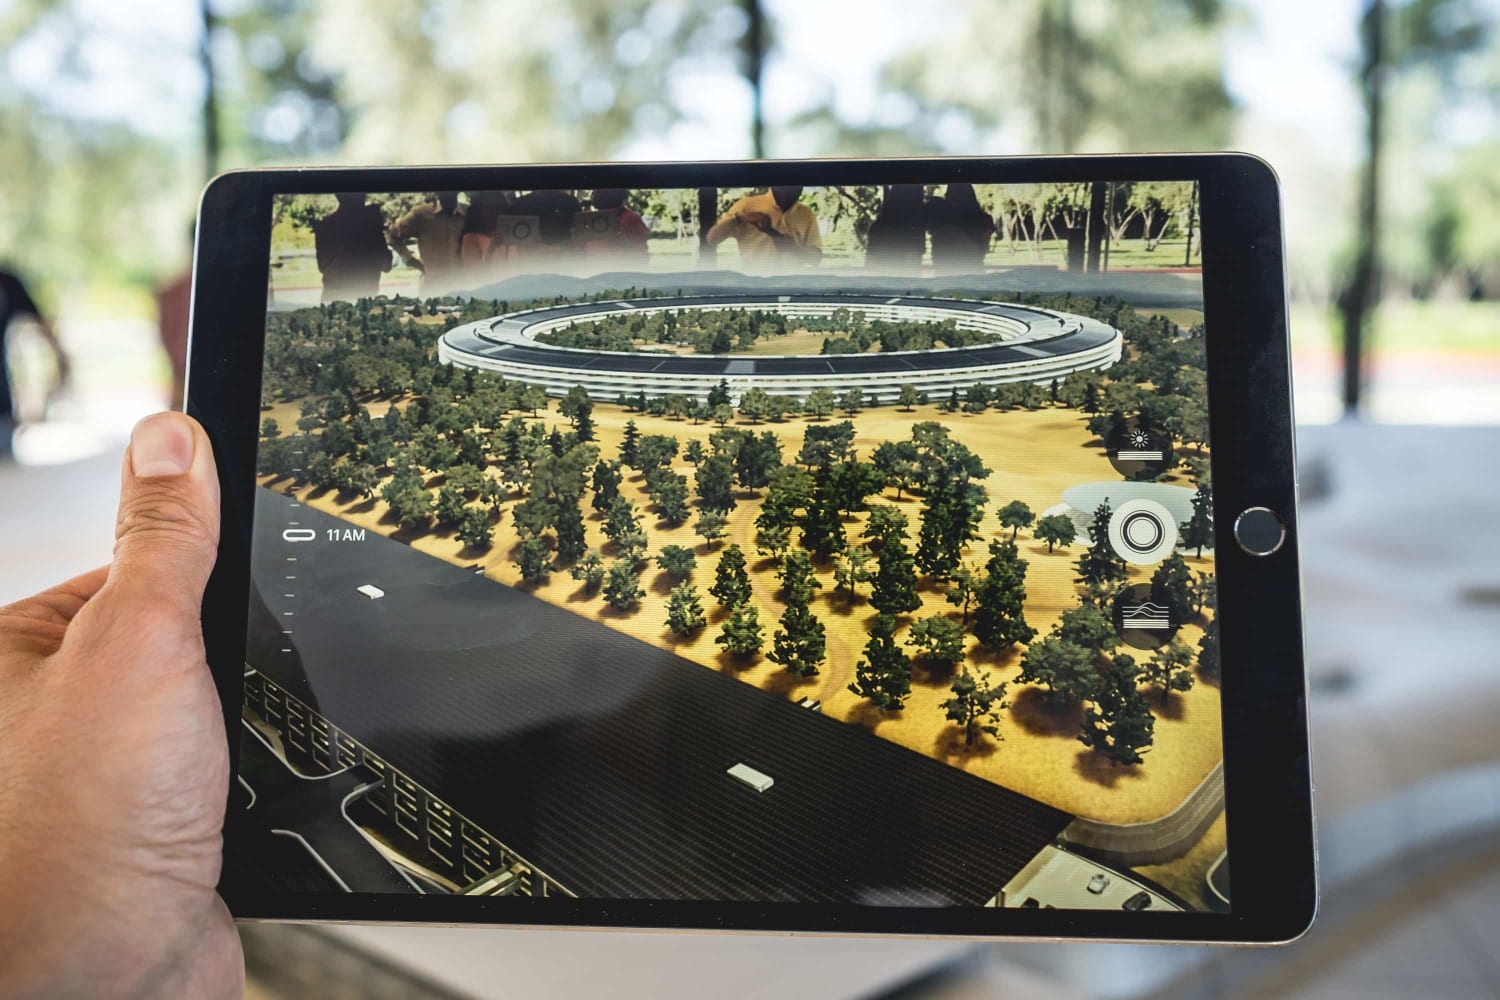 apple-ipad-rumored-to-get-screen-and-chip-upgrades-in-2021-20201210-1